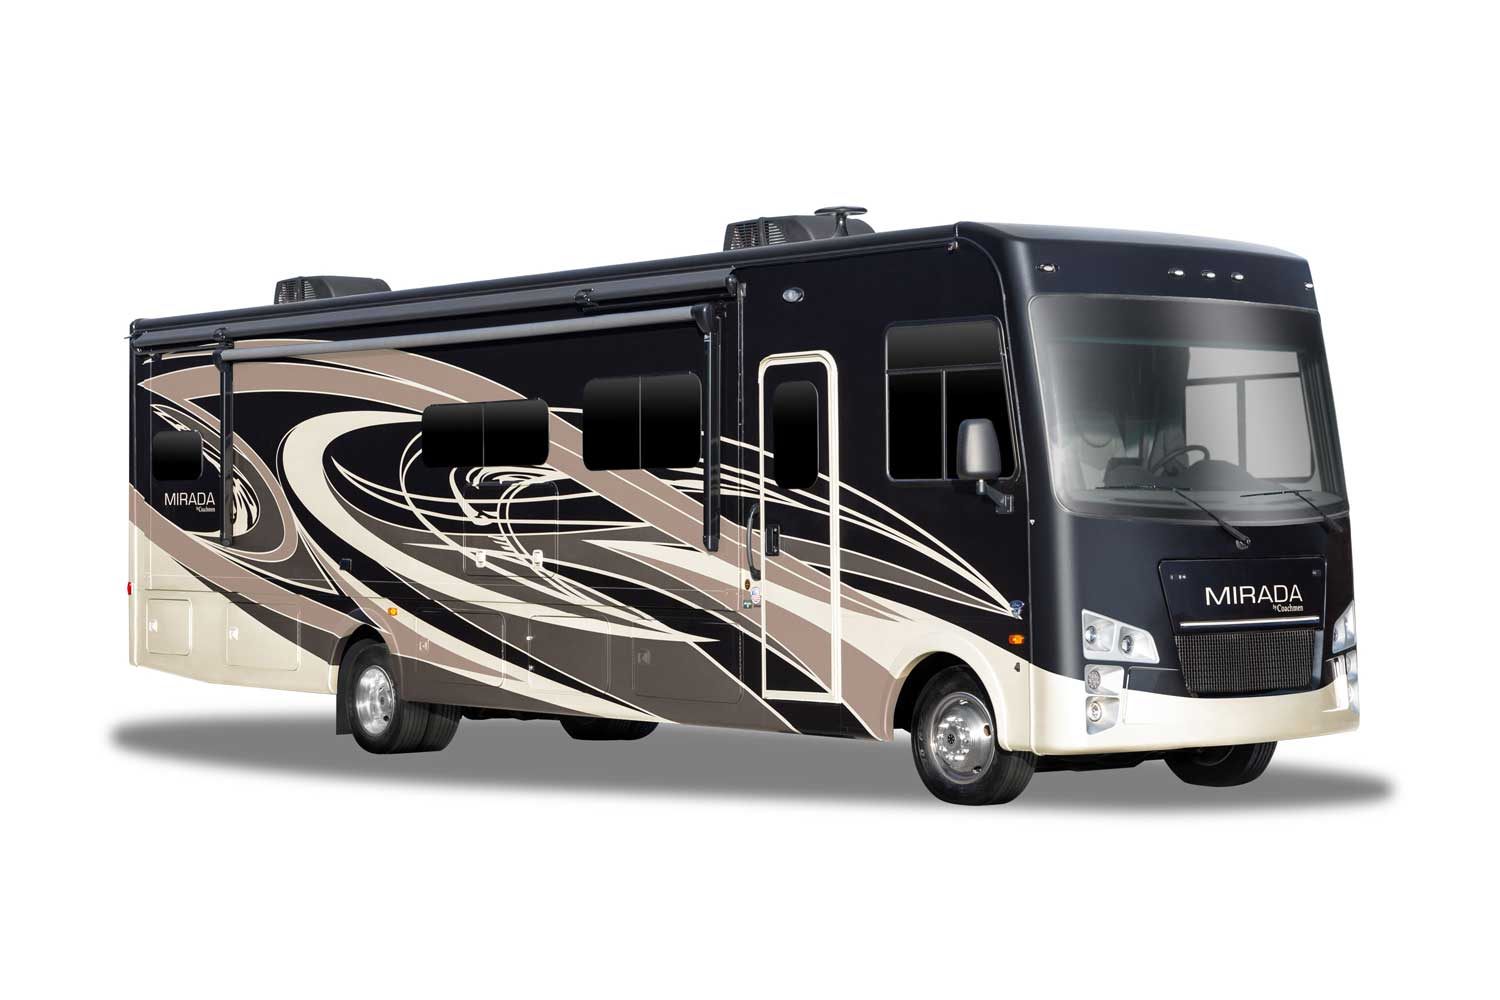 All Things RV Podcast: Affordable Class A Motorhomes and RV Road Side Assistance